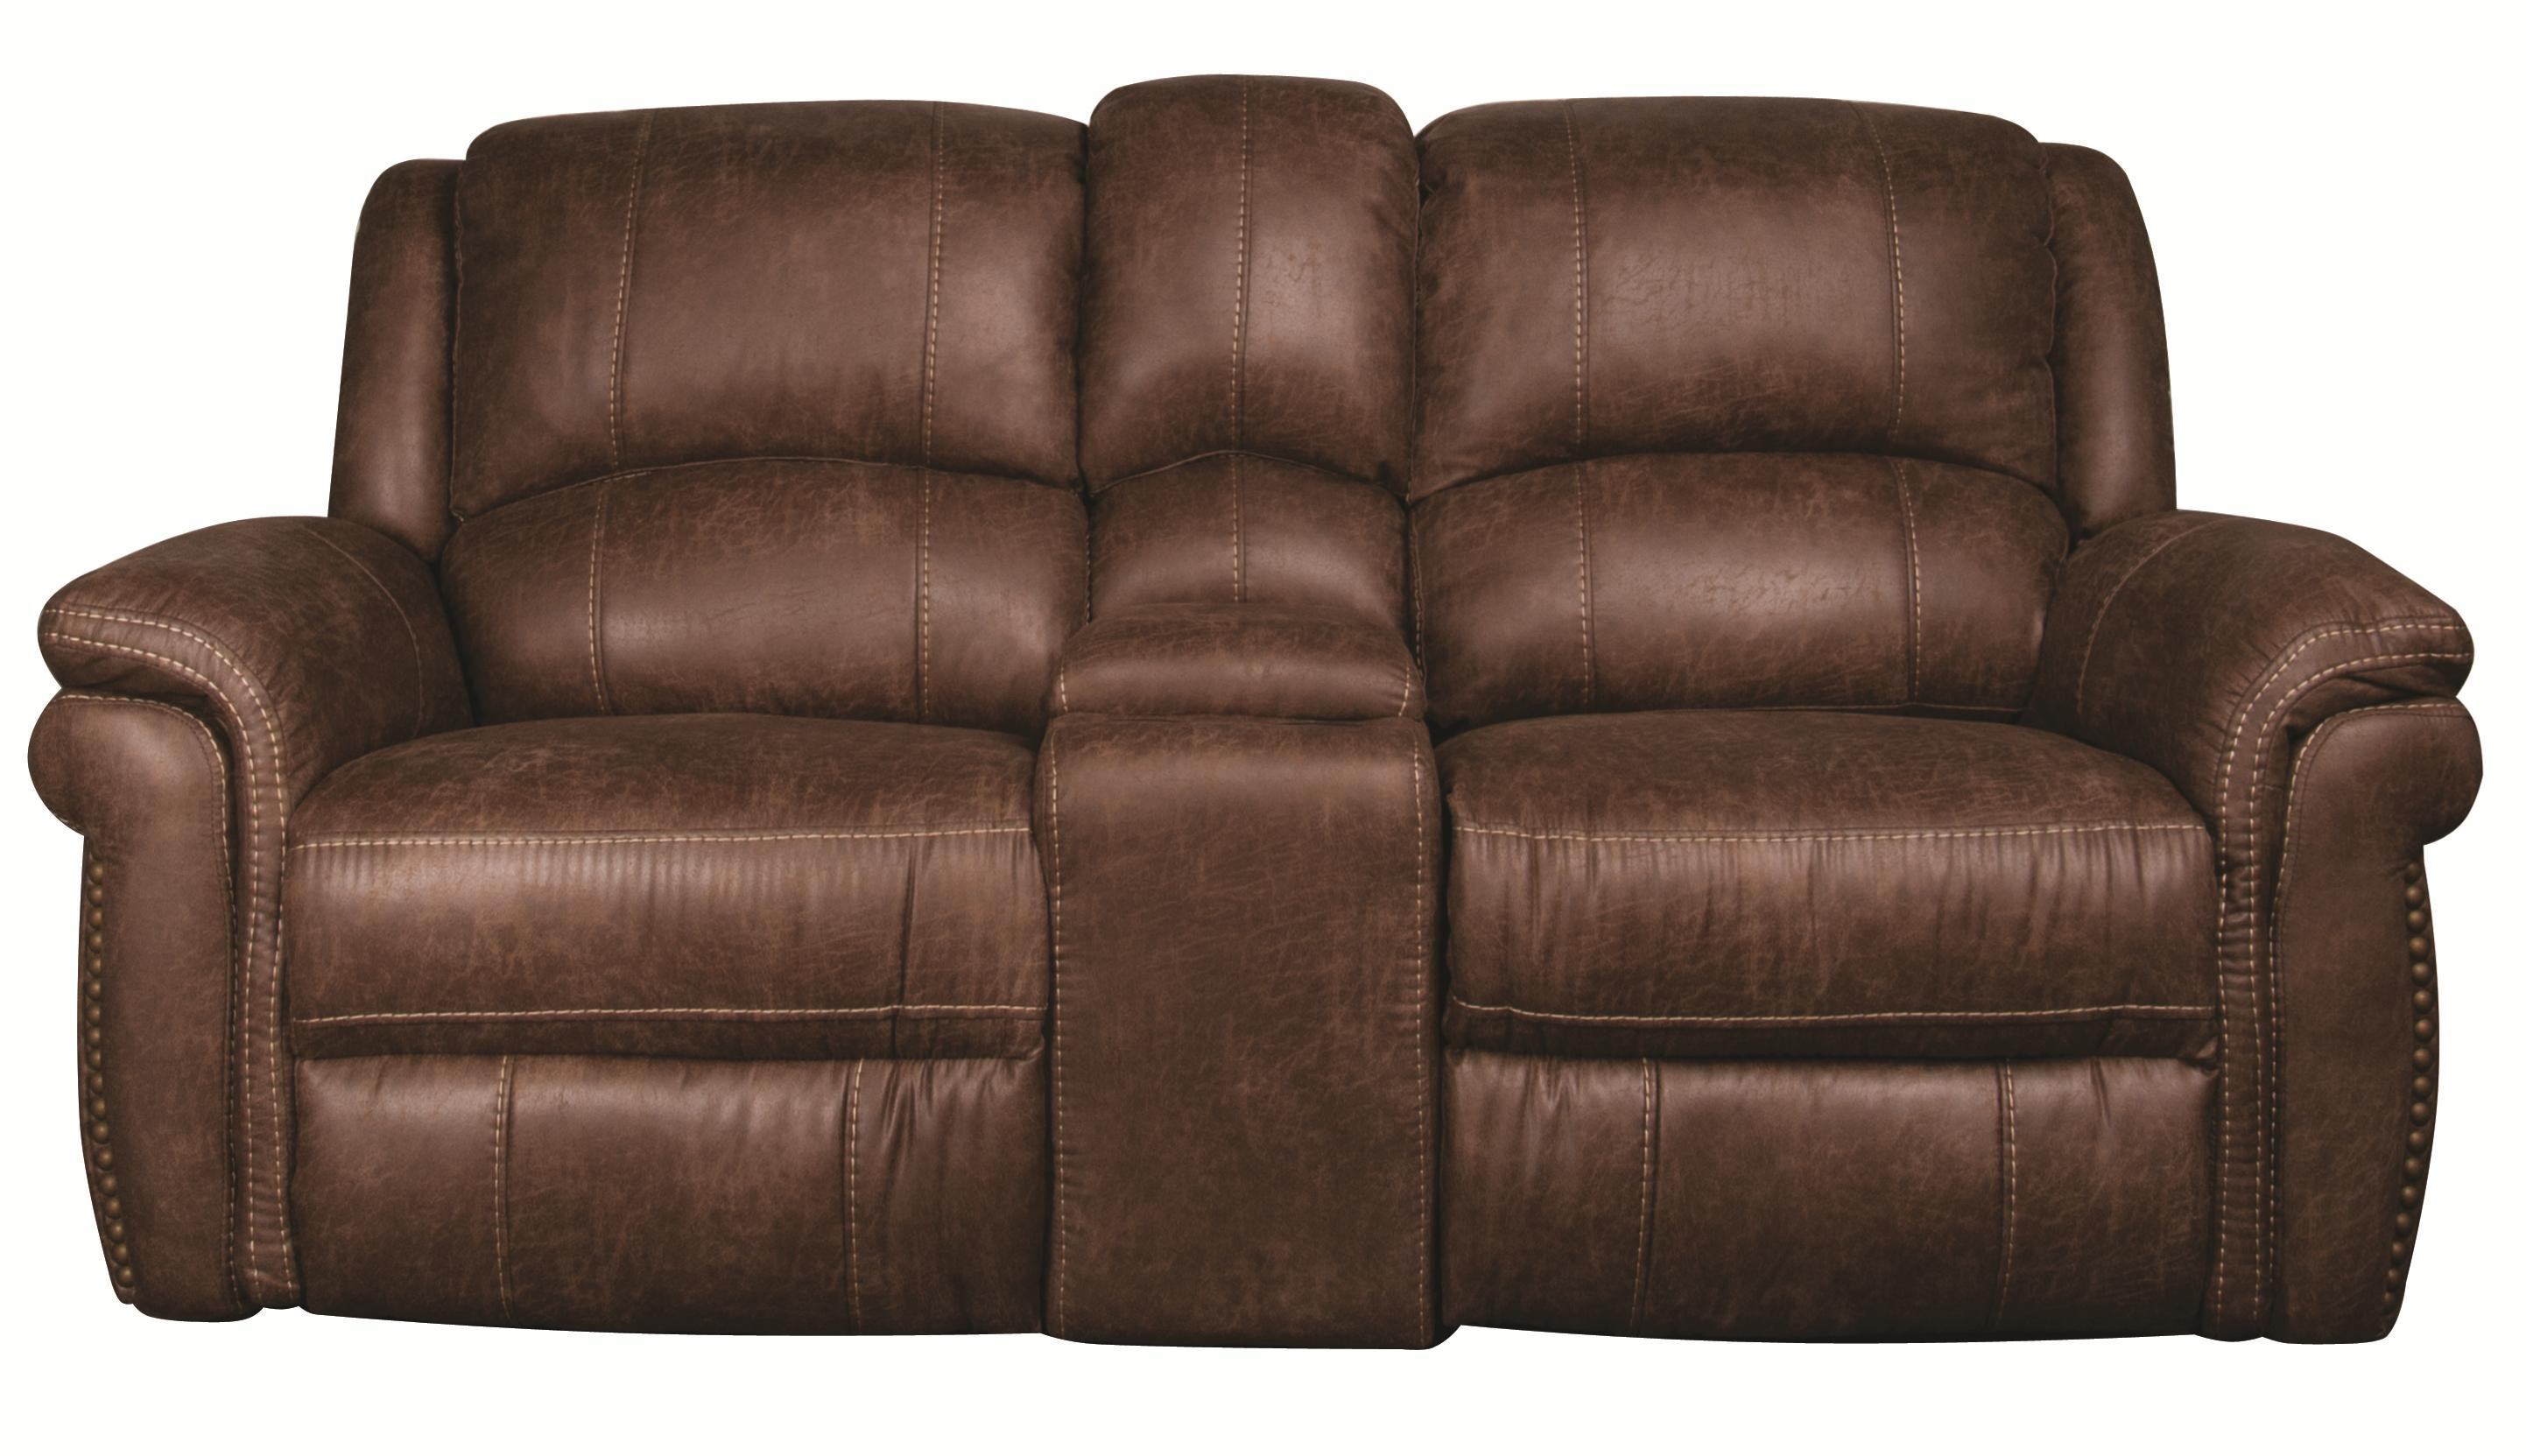 Morris Home Furnishings Beau Beau 3-Piece Reclining Loveseat - Item Number: 147848002